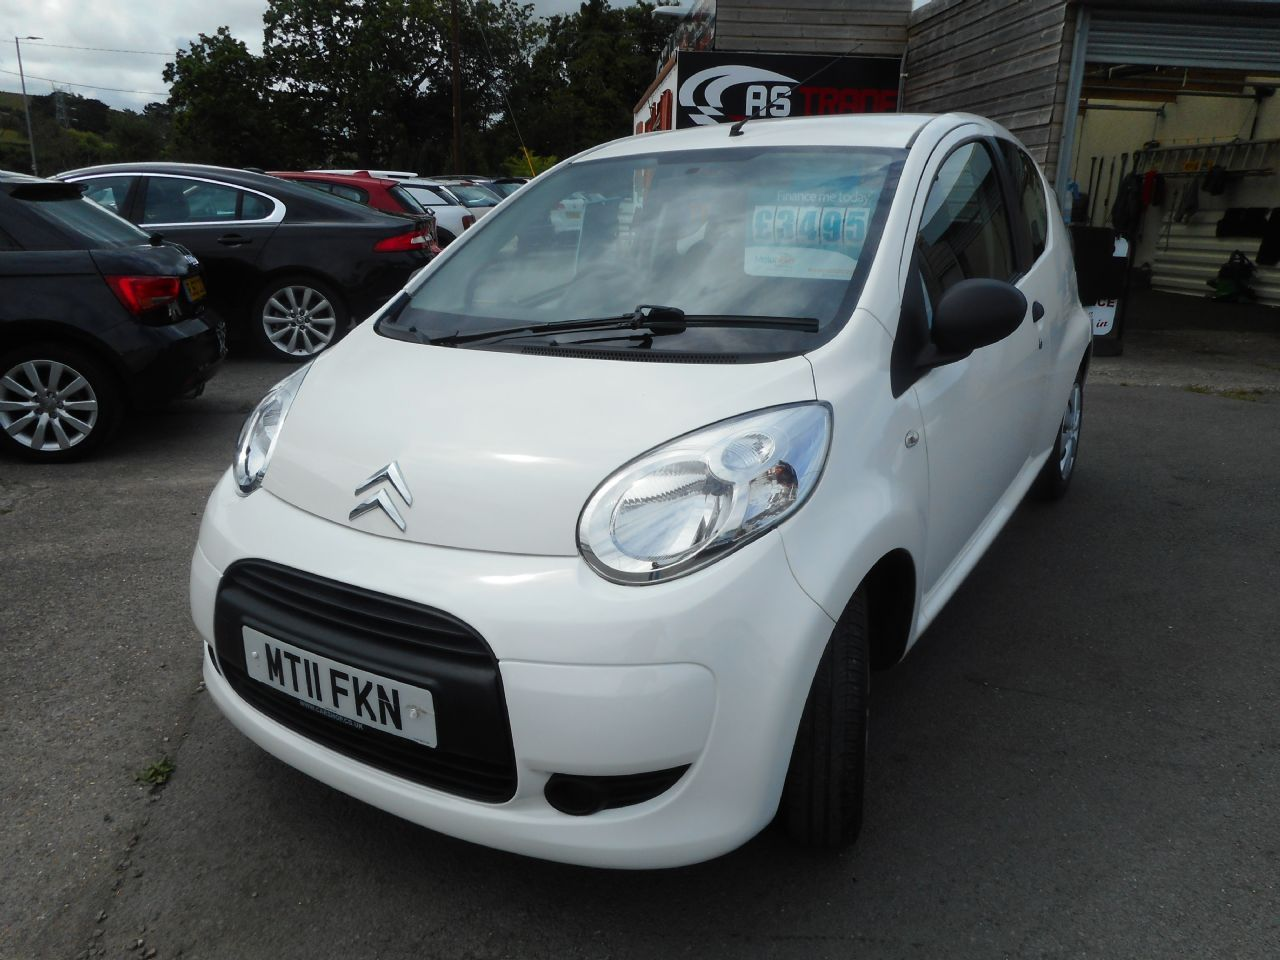 CITROEN C1 1.0i 68hp VTR (2011) - Picture 6